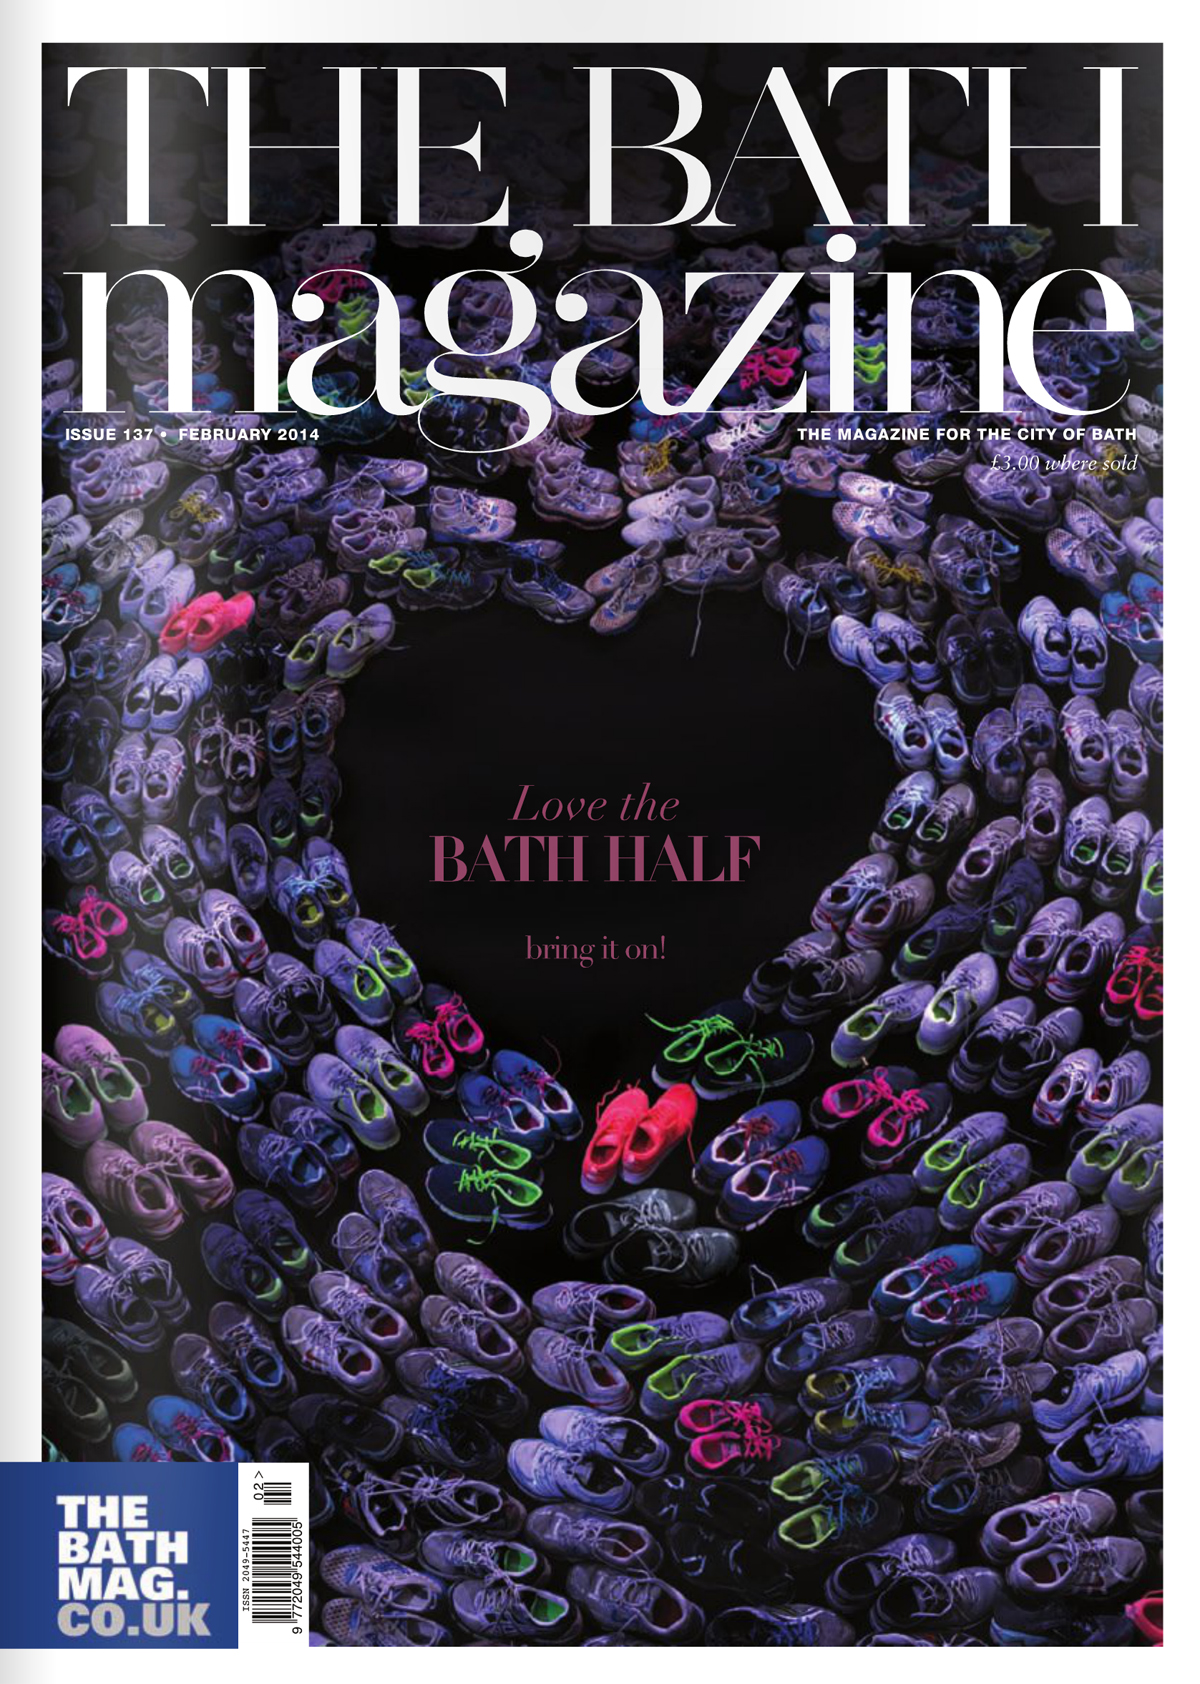 Image via Bath magazine